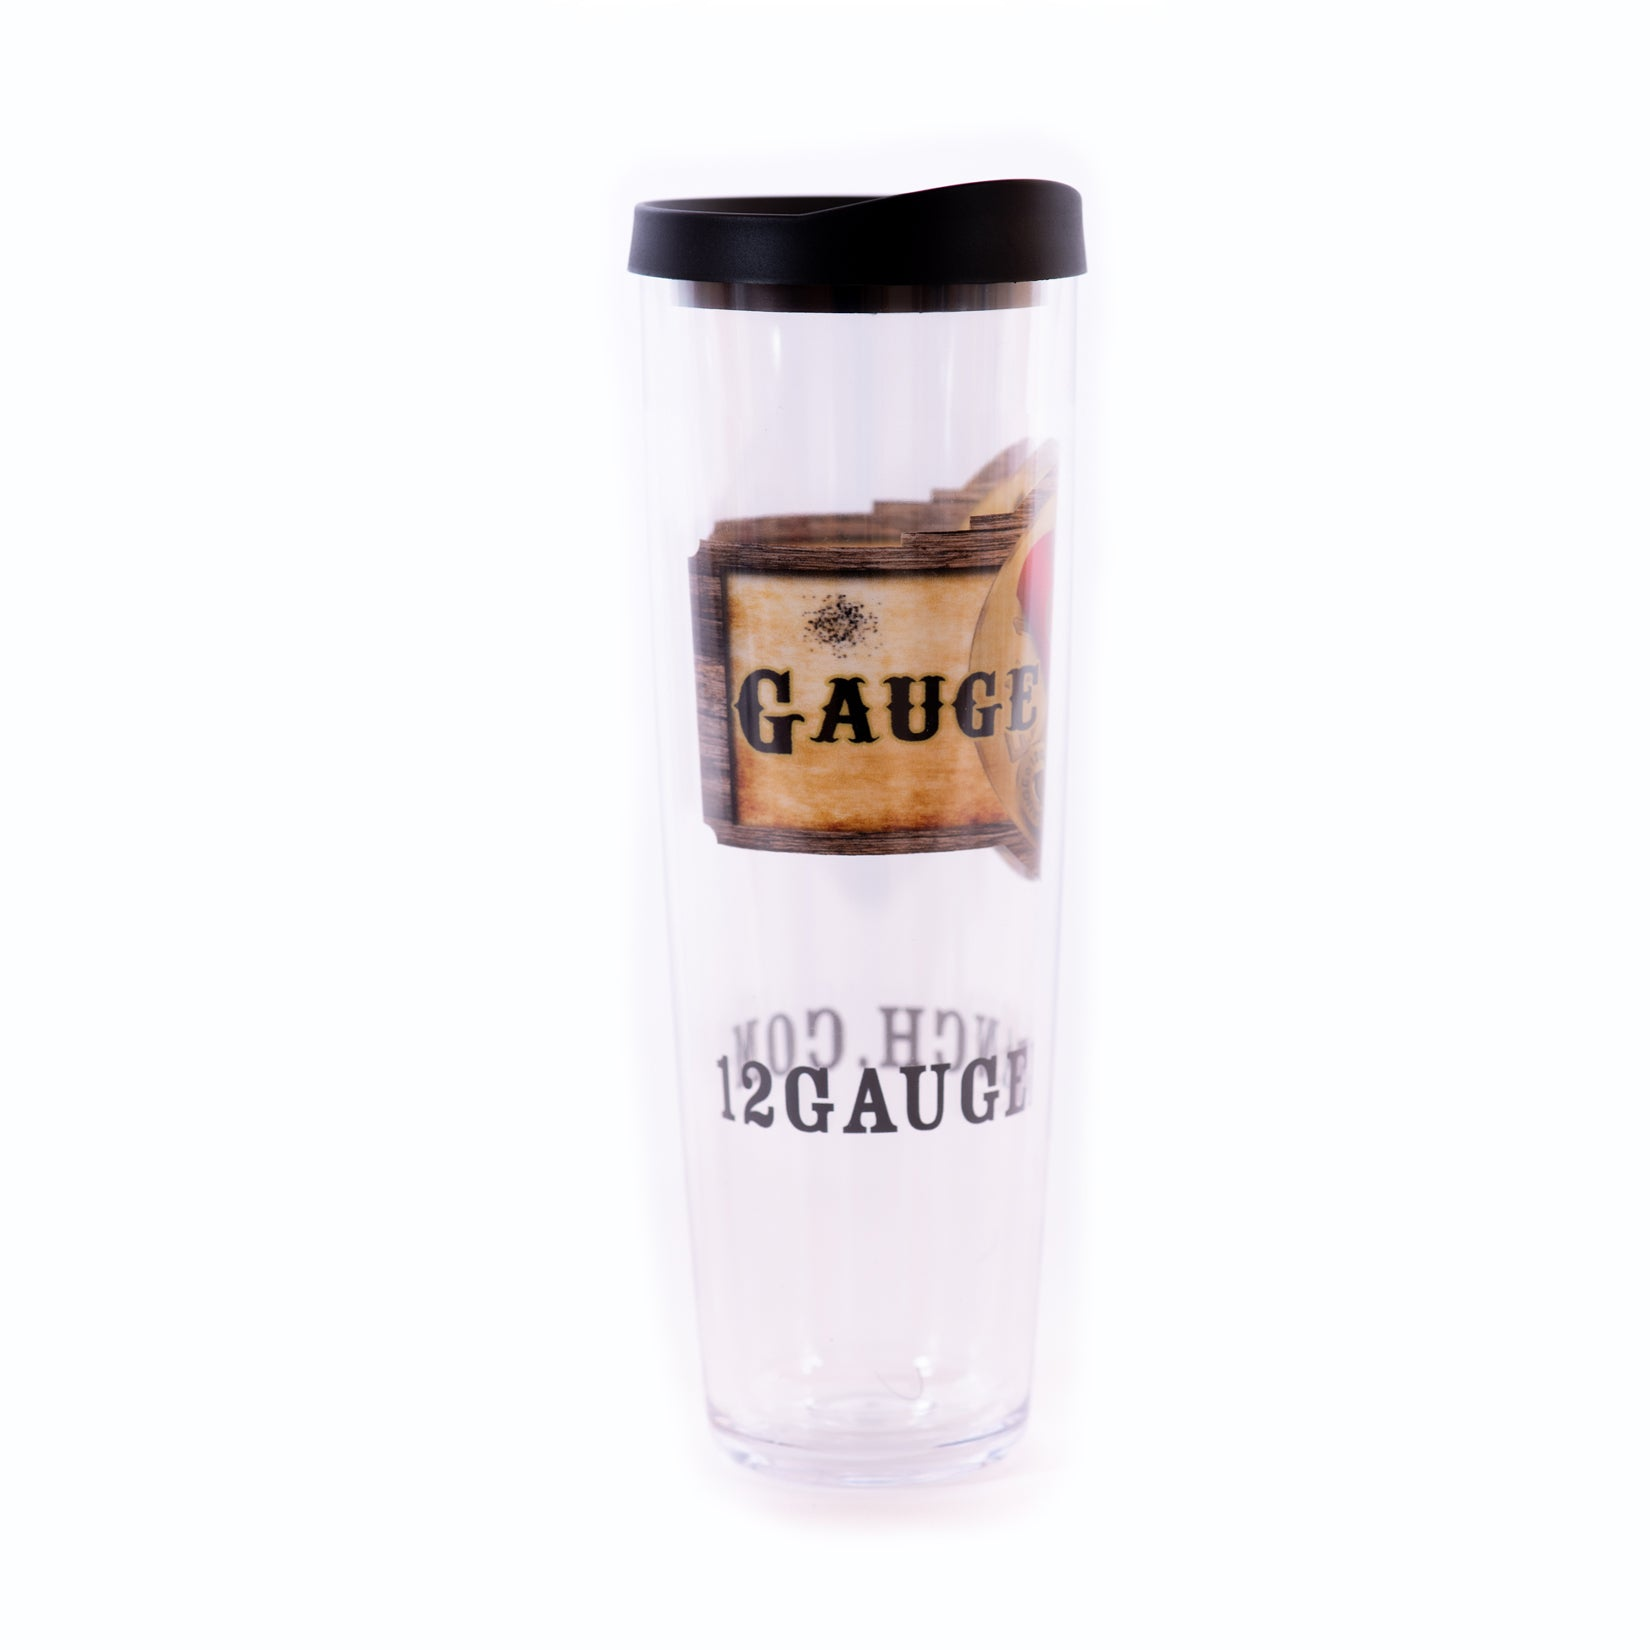 12 Gauge Ranch 24oz Insulated Covo Cup, Accessories, 12 Gauge Ranch, 12 Gauge Ranch 12 Gauge Ranch